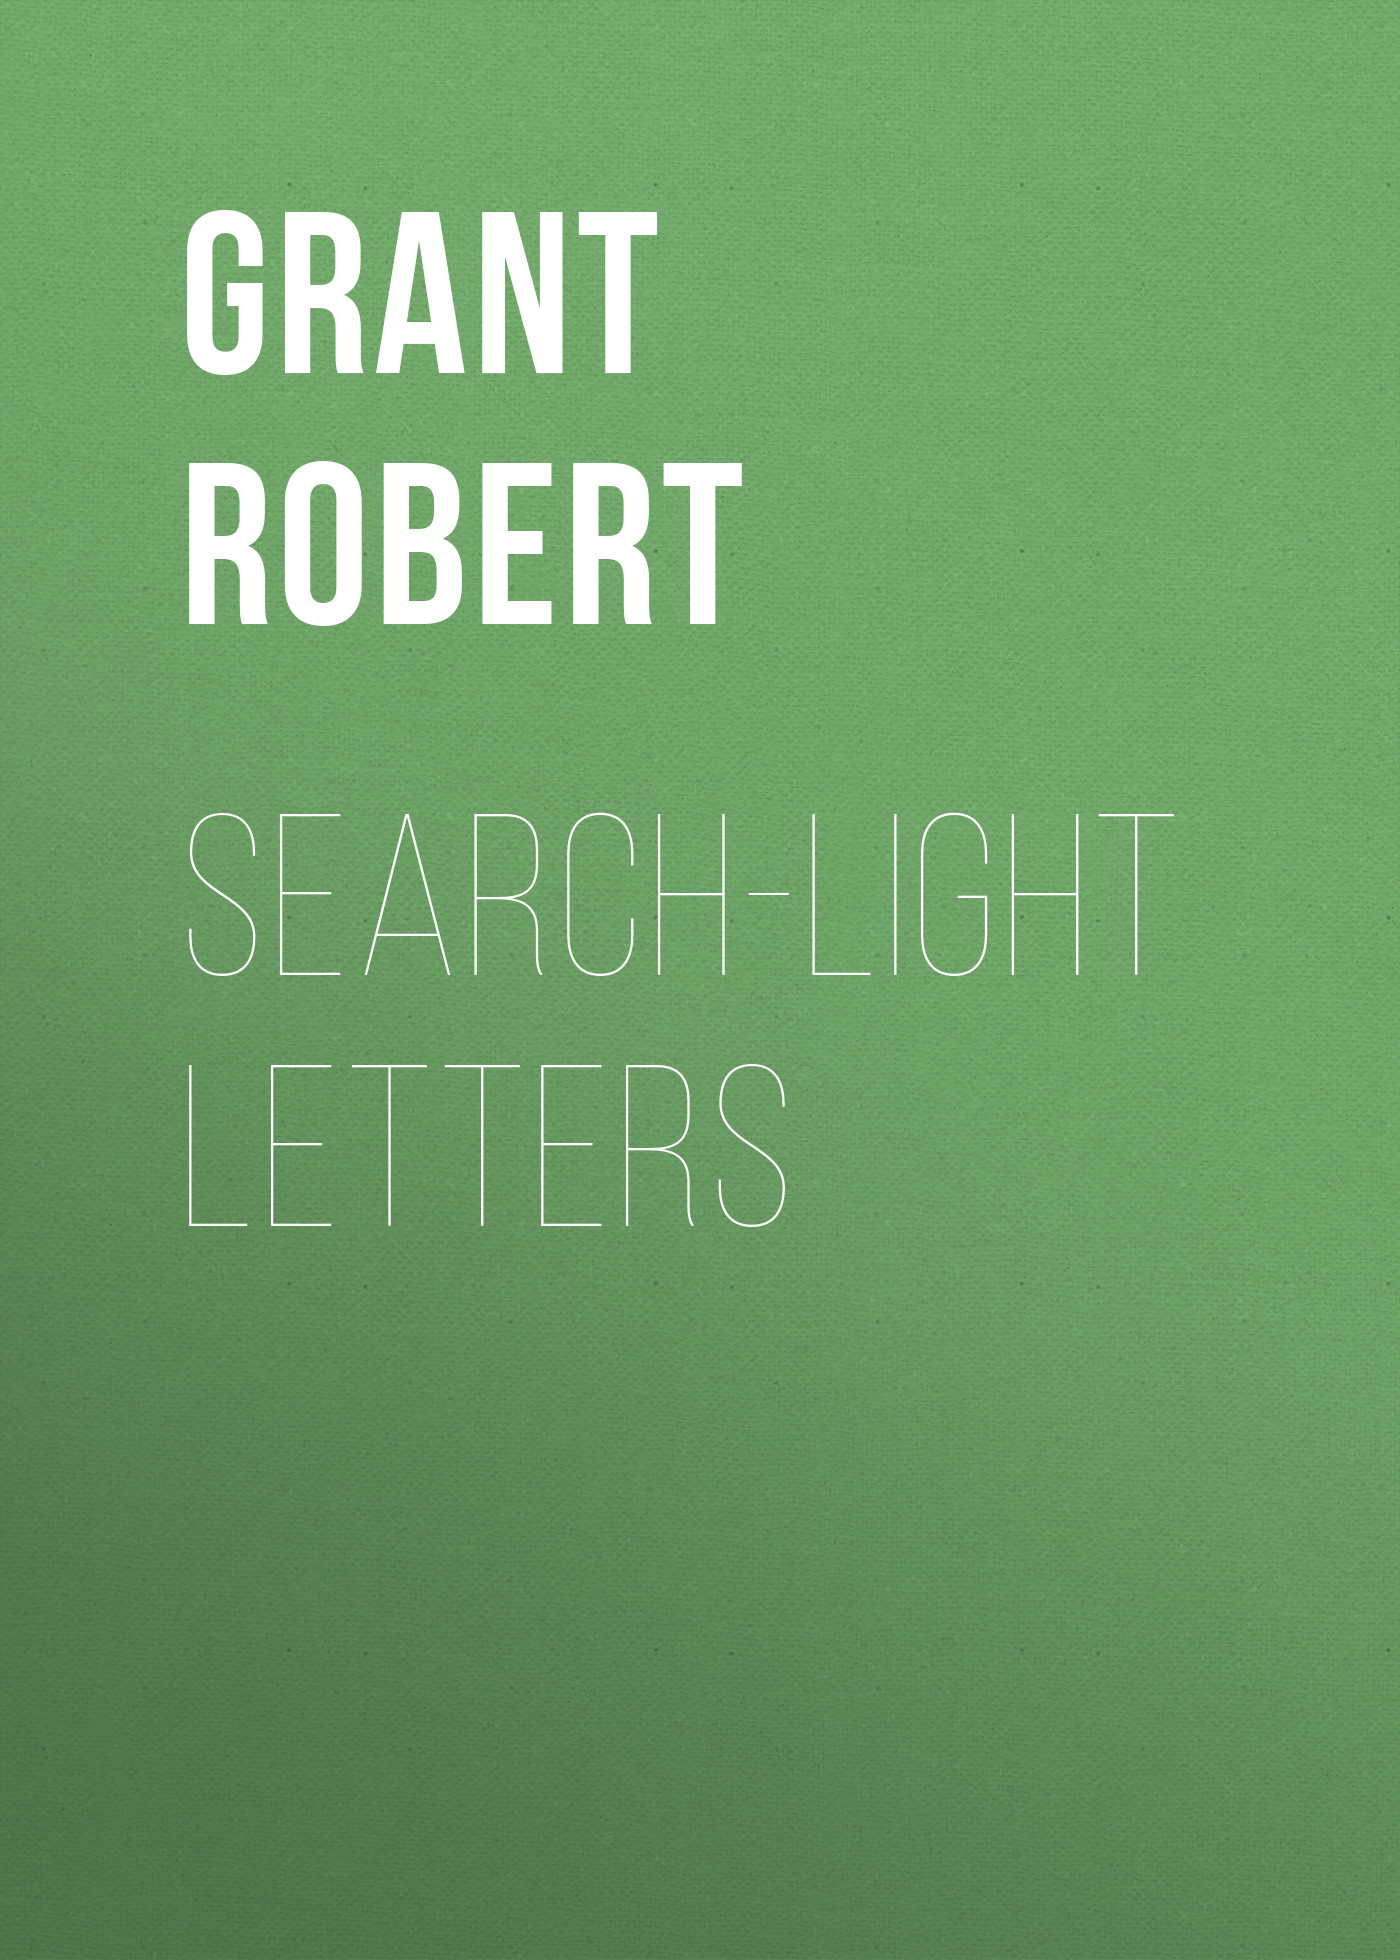 Grant Robert Search-Light Letters joyce lain kennedy job search letters for dummies